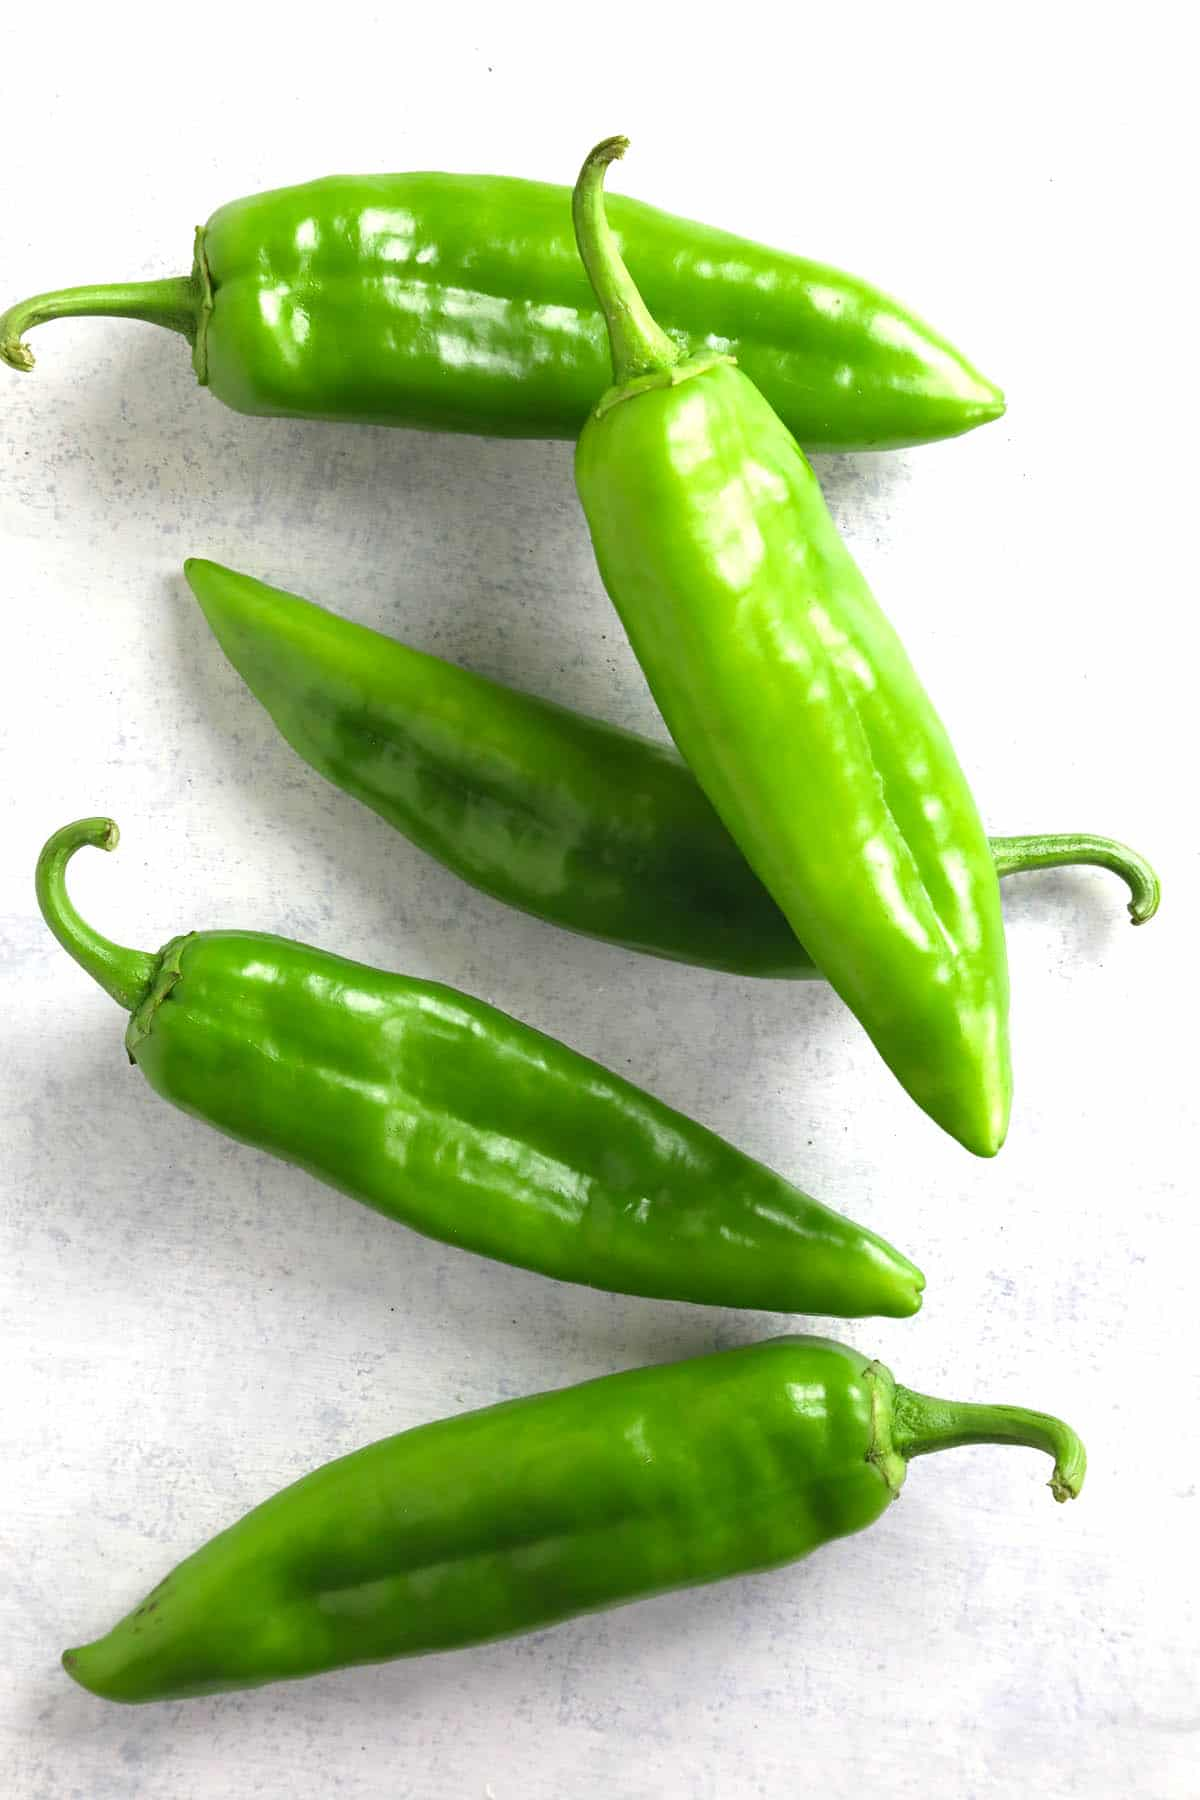 Big Jim Chili Peppers